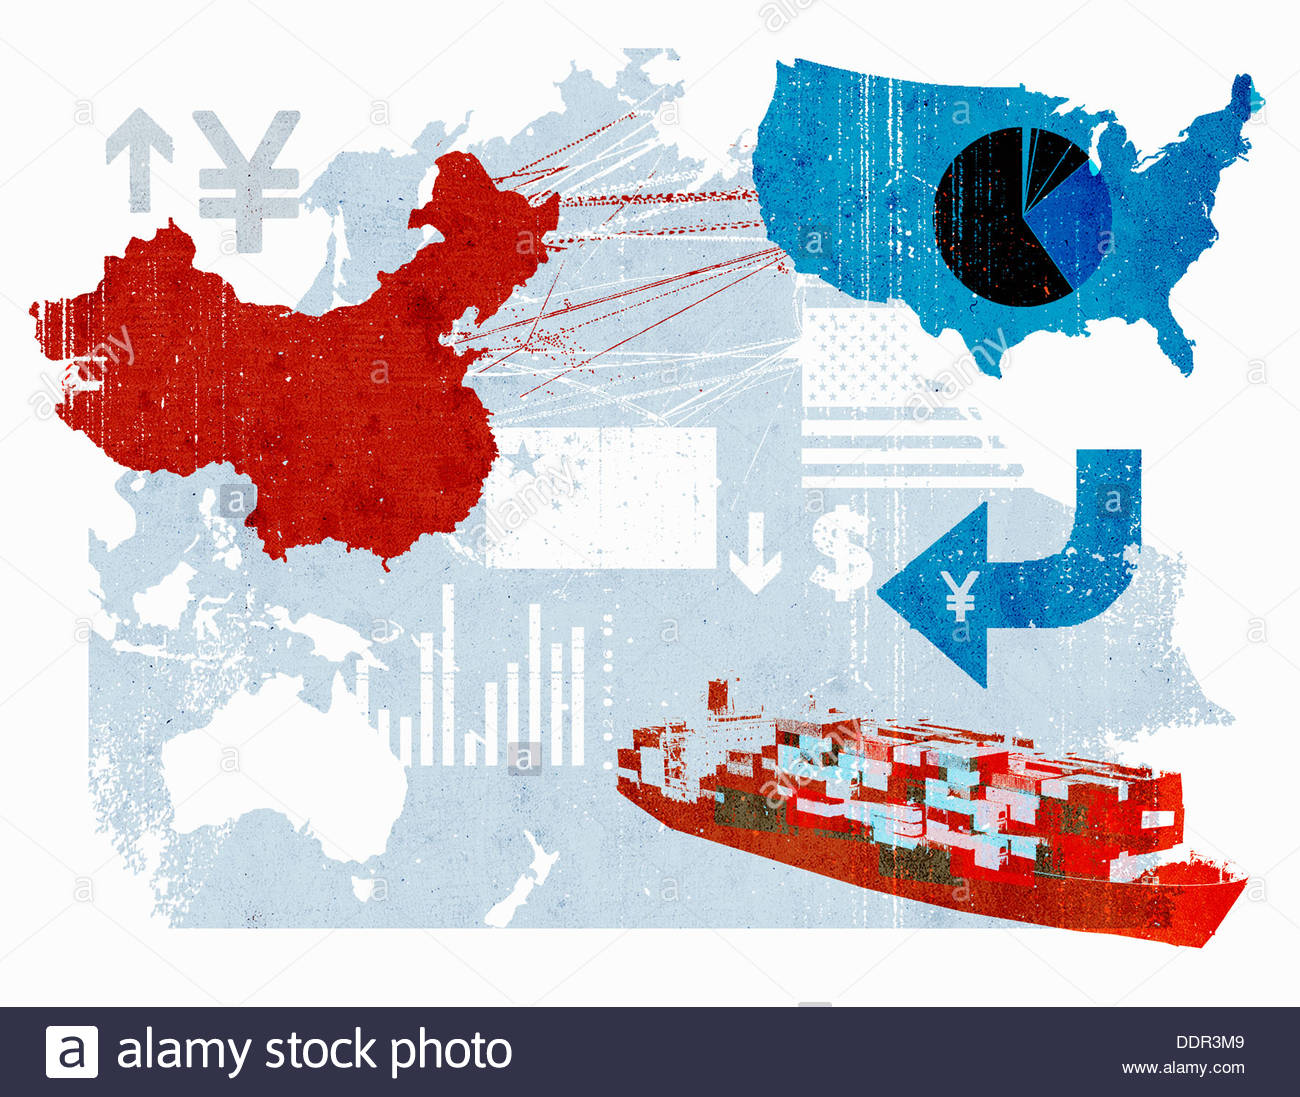 Trade Connections Between China And United States On Map Stock - Free united states map graphic